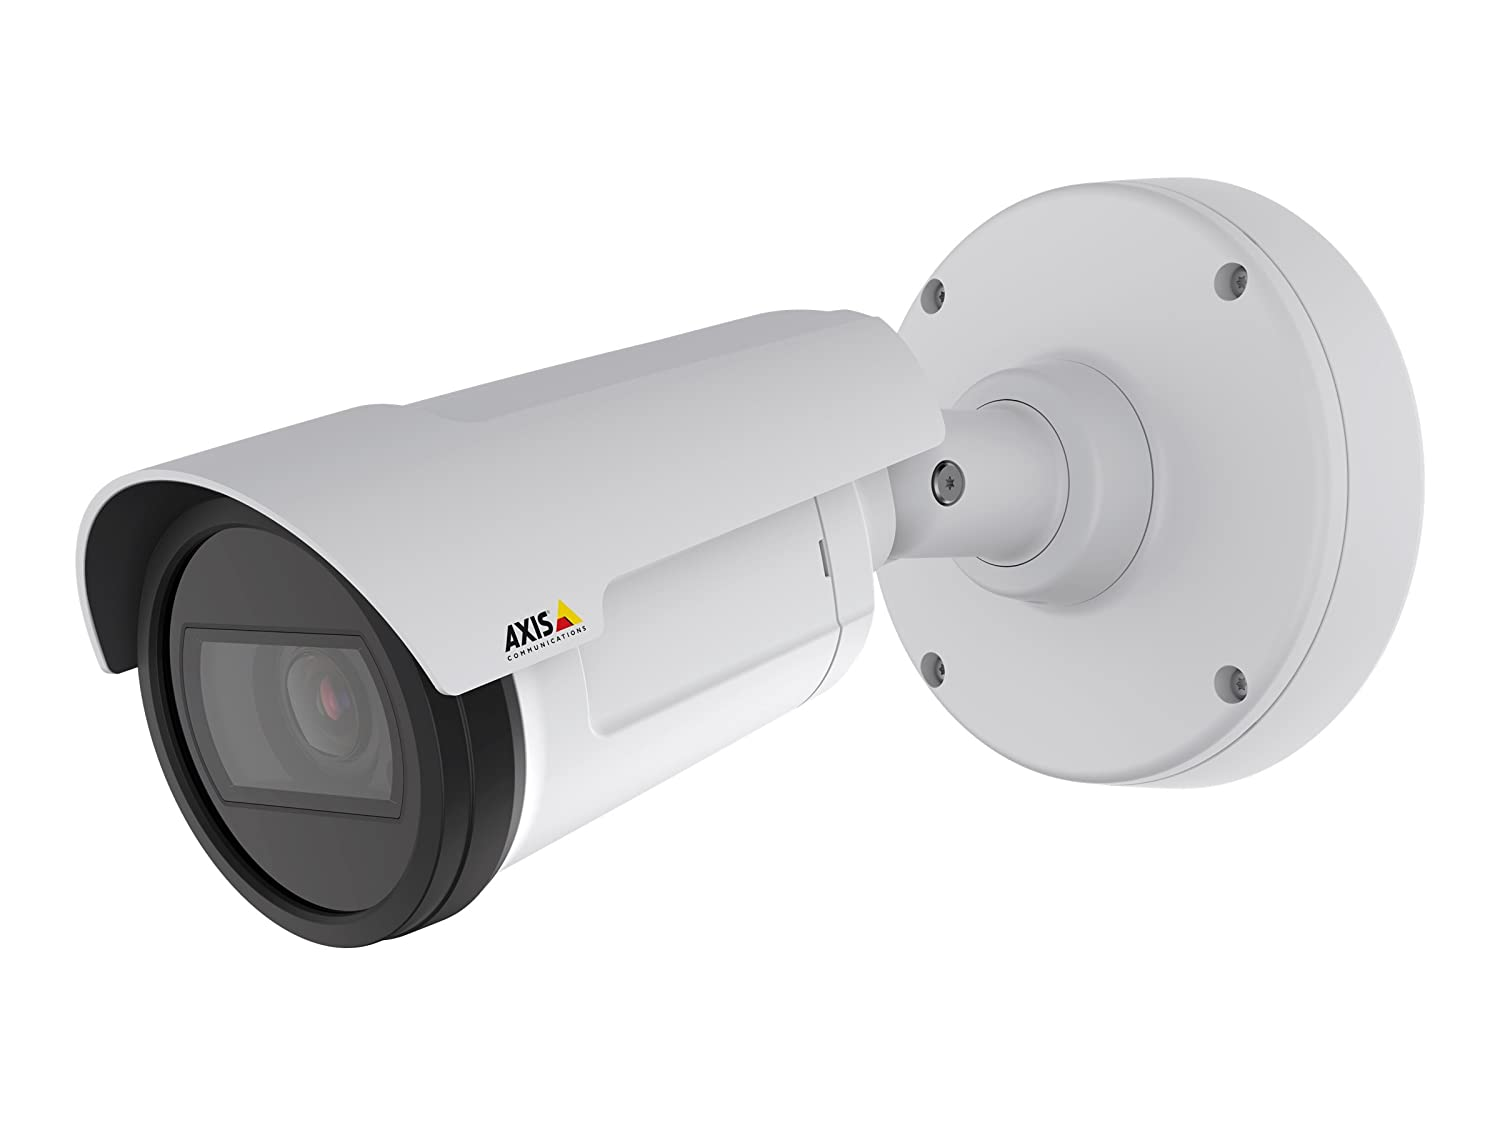 Axis Communications 0625-001 P1427-Le - Network Surveillance Camera -  Outdoor - Weatherproof - Color (Day & Night) - 2 8-9 8Mm Lens - 5 MP - 2592  X